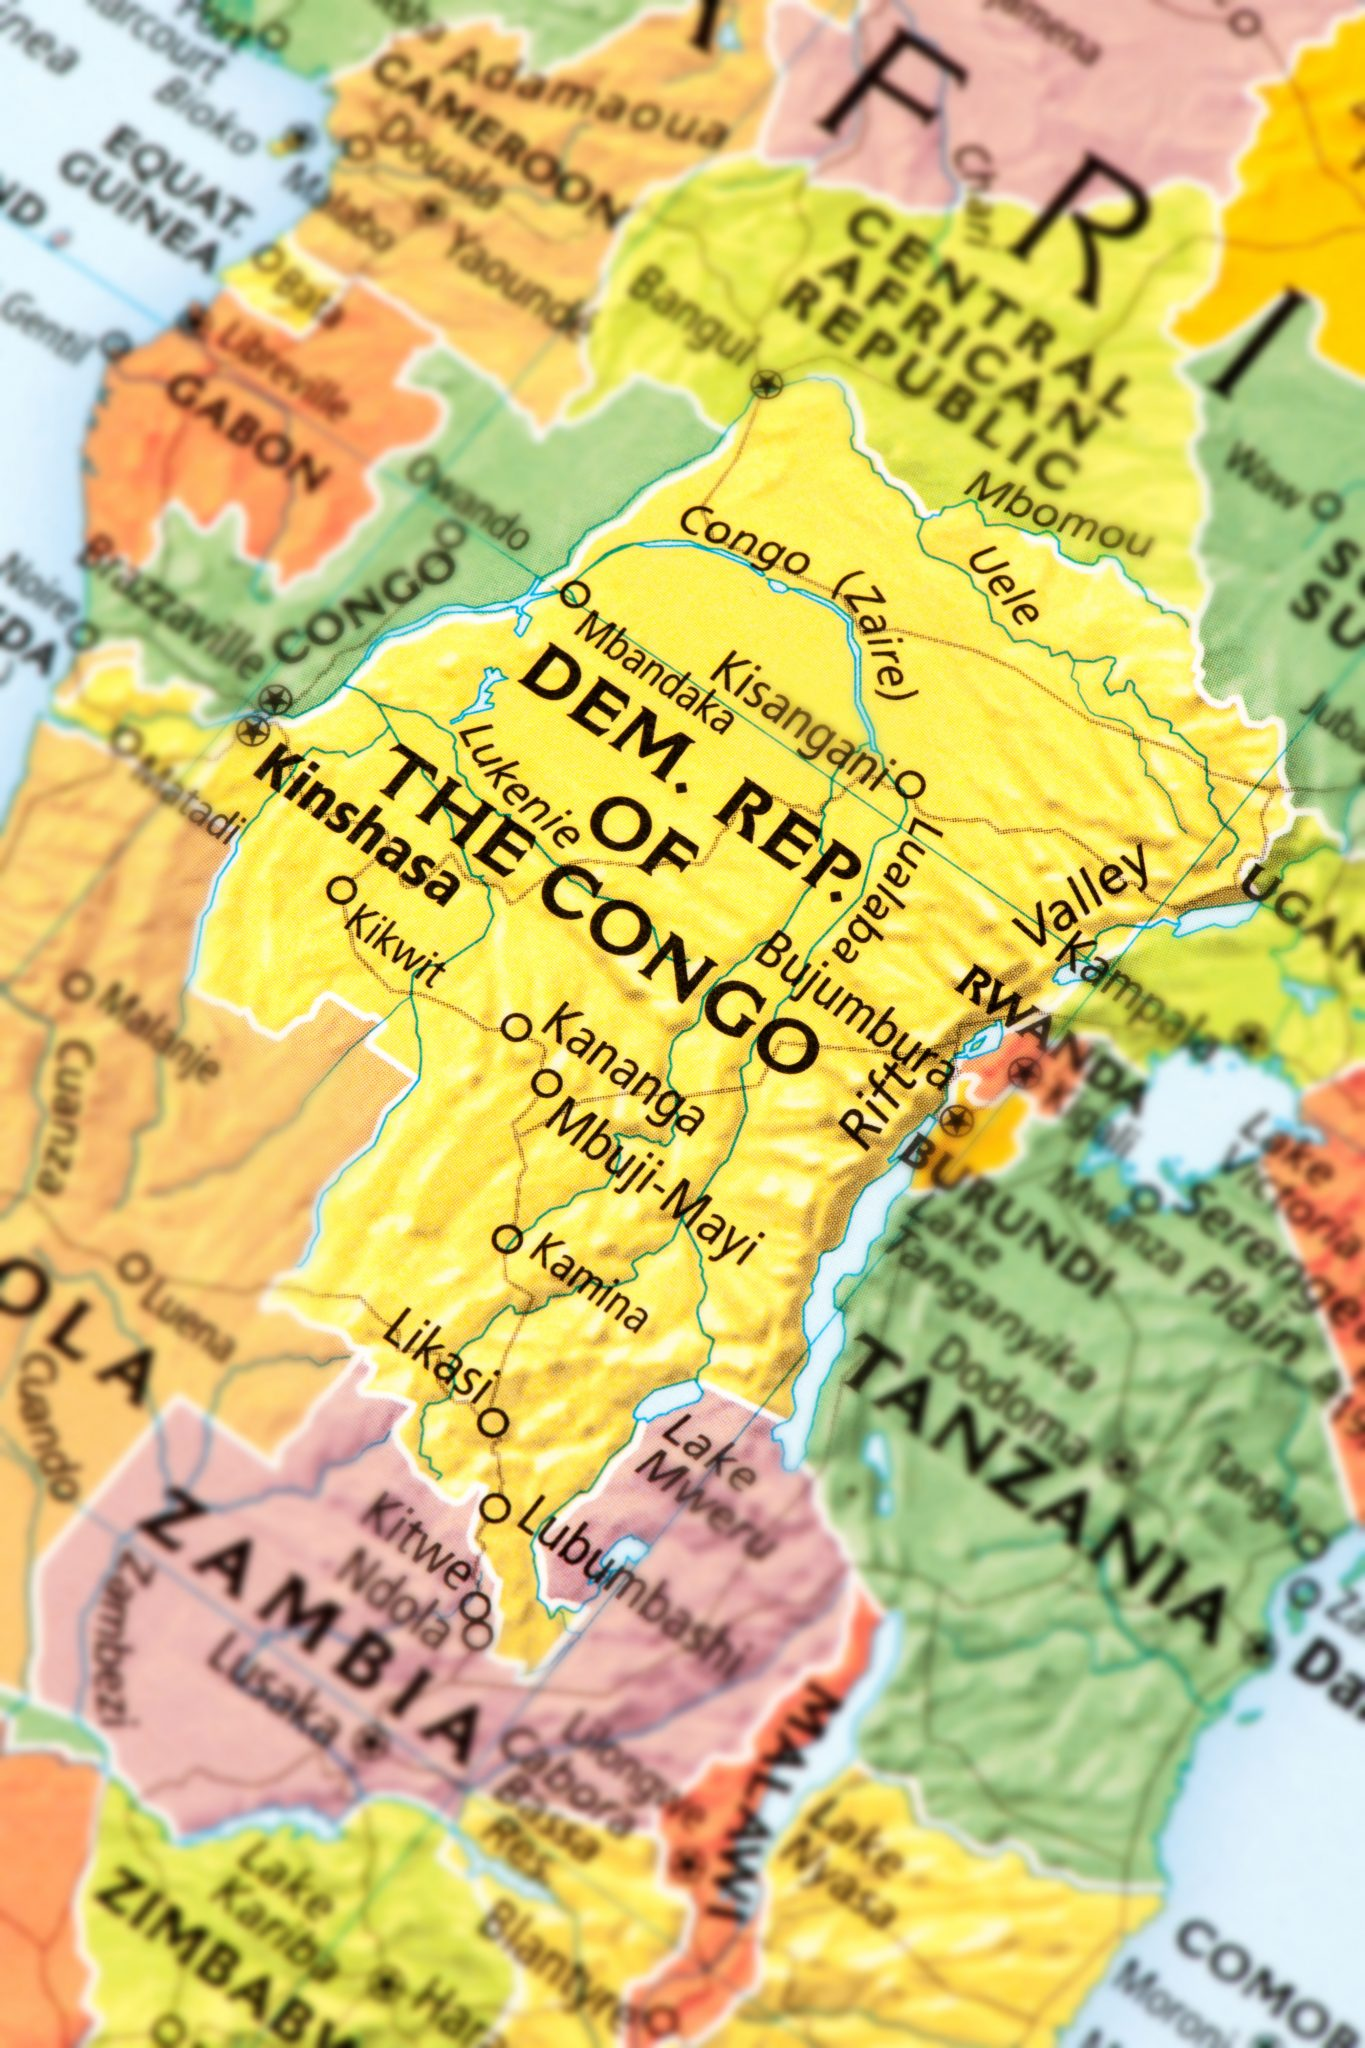 Map of the Democratic Republic of the Congo in Africa, the location of Virunga National Park.